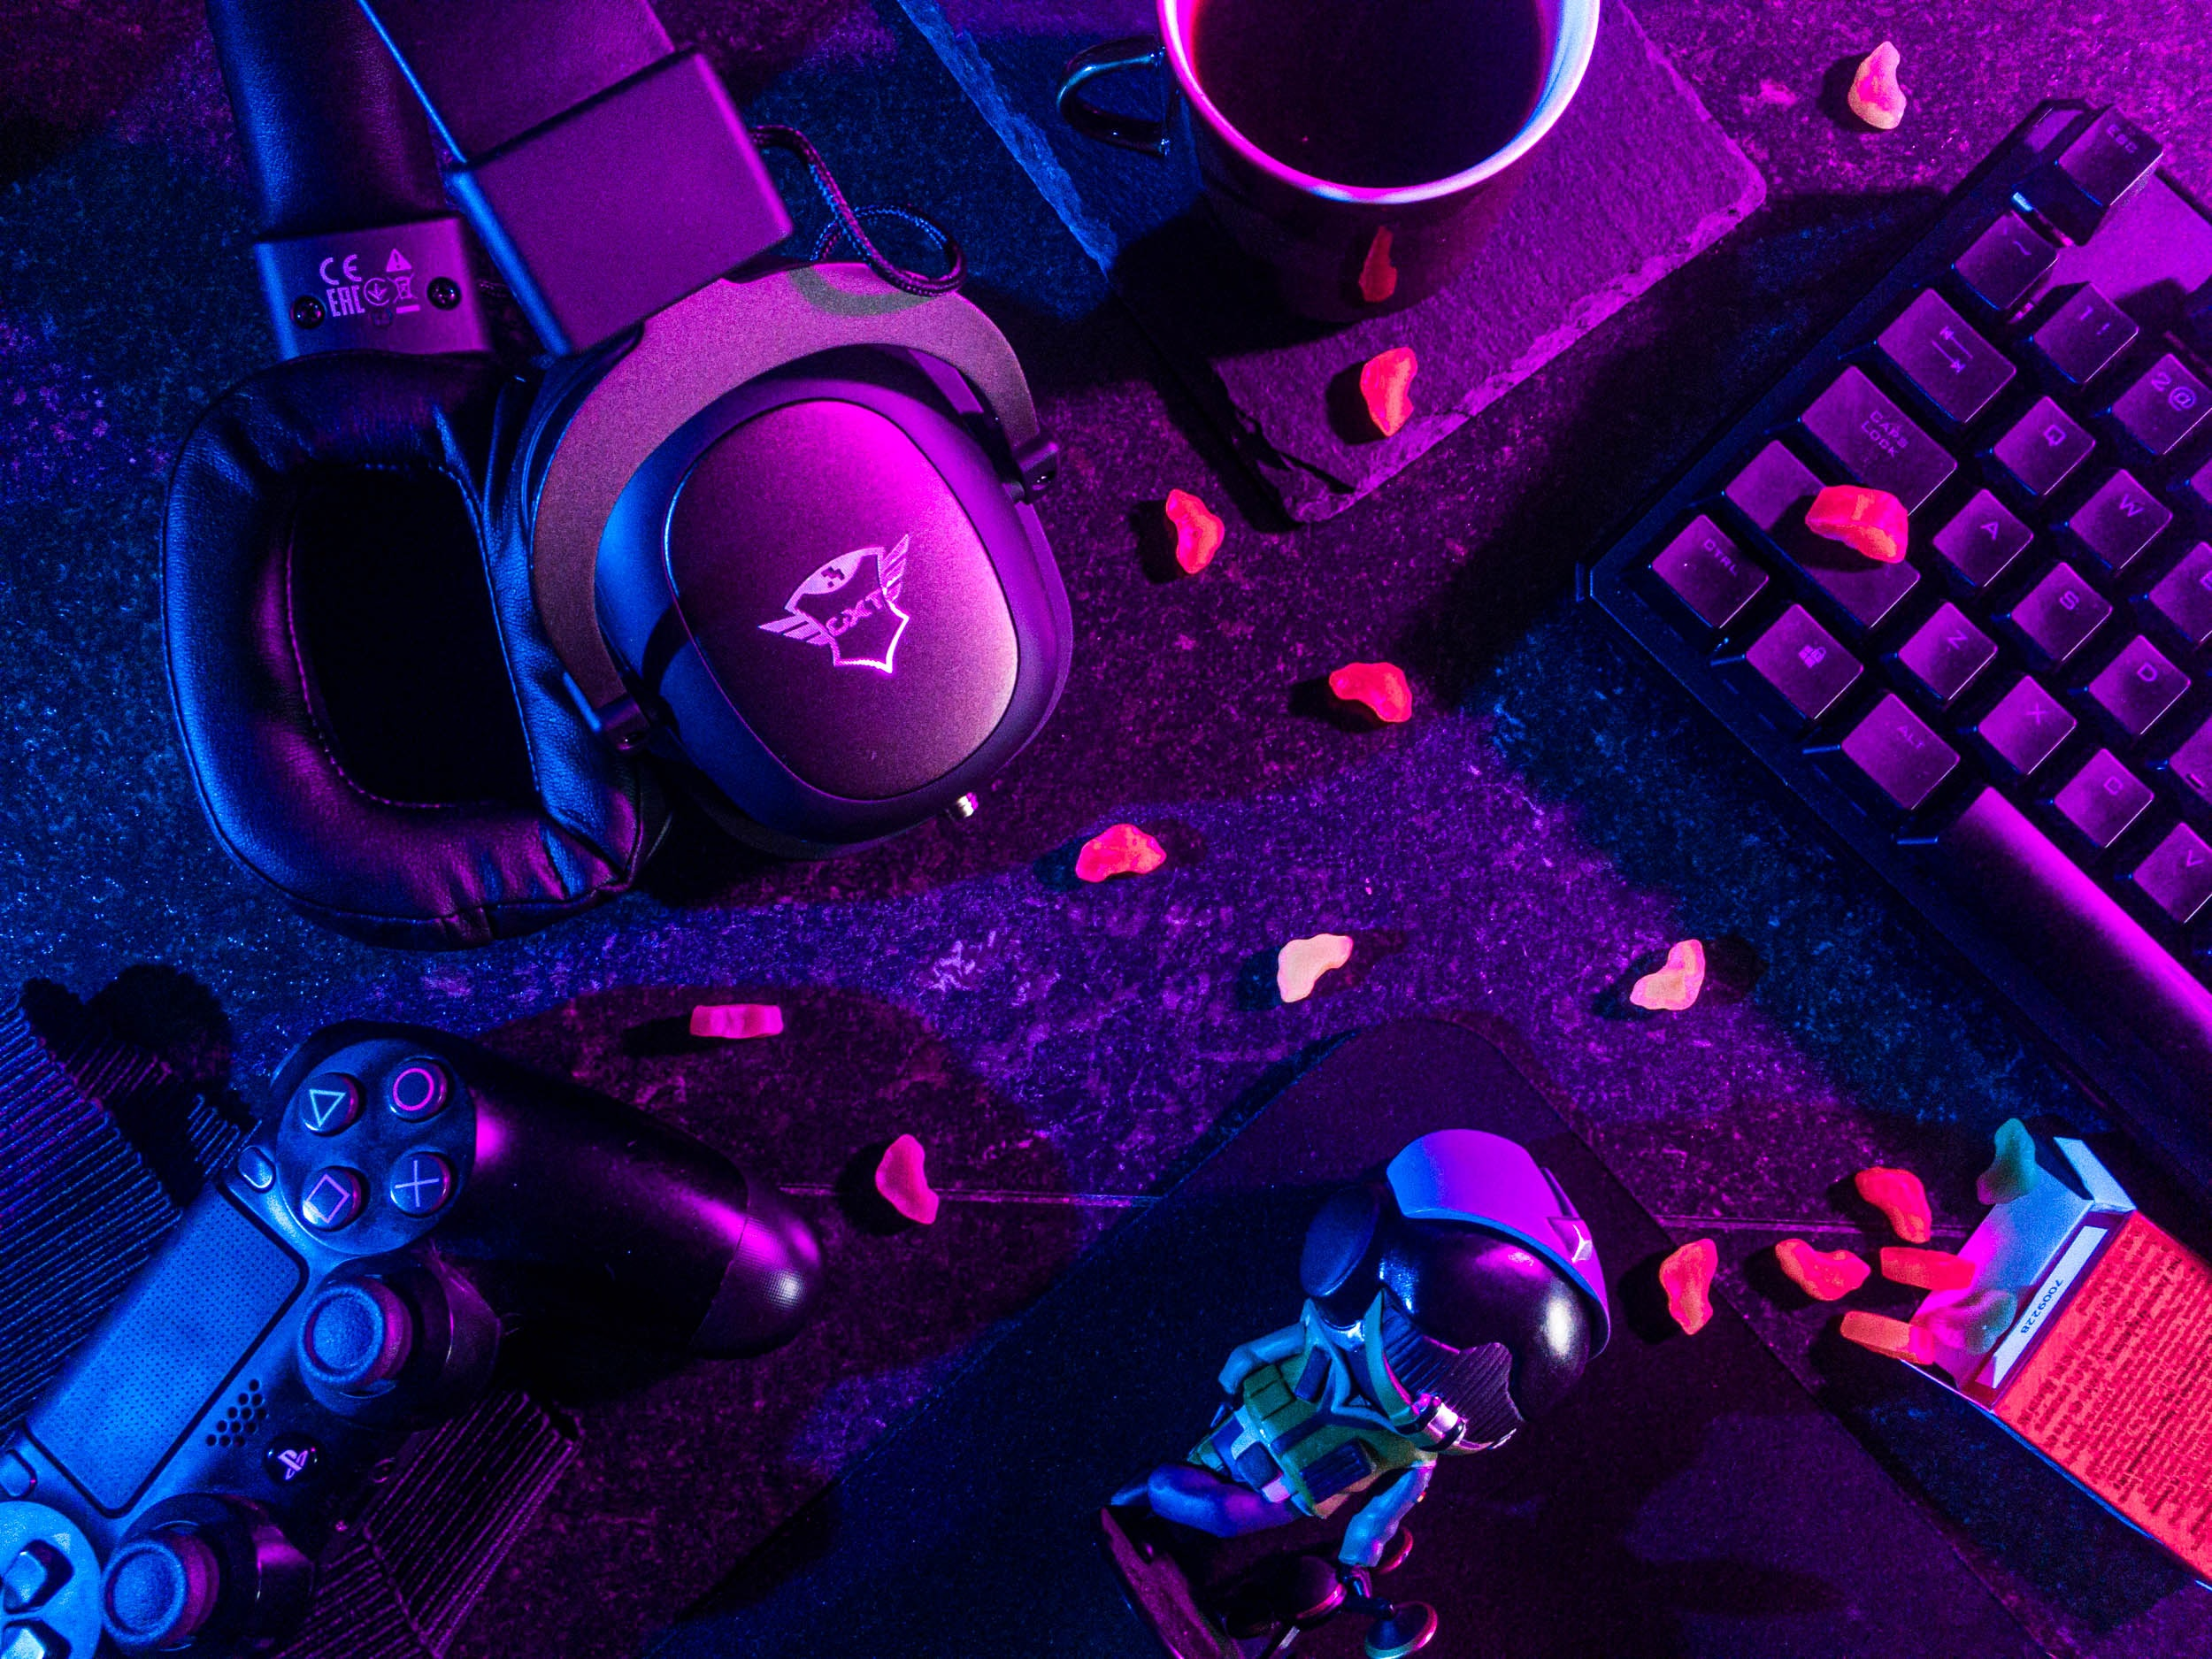 Headphones and video game controllers under purple and pink lighting. Photo courtesy of Lucie Liz on Pexels.